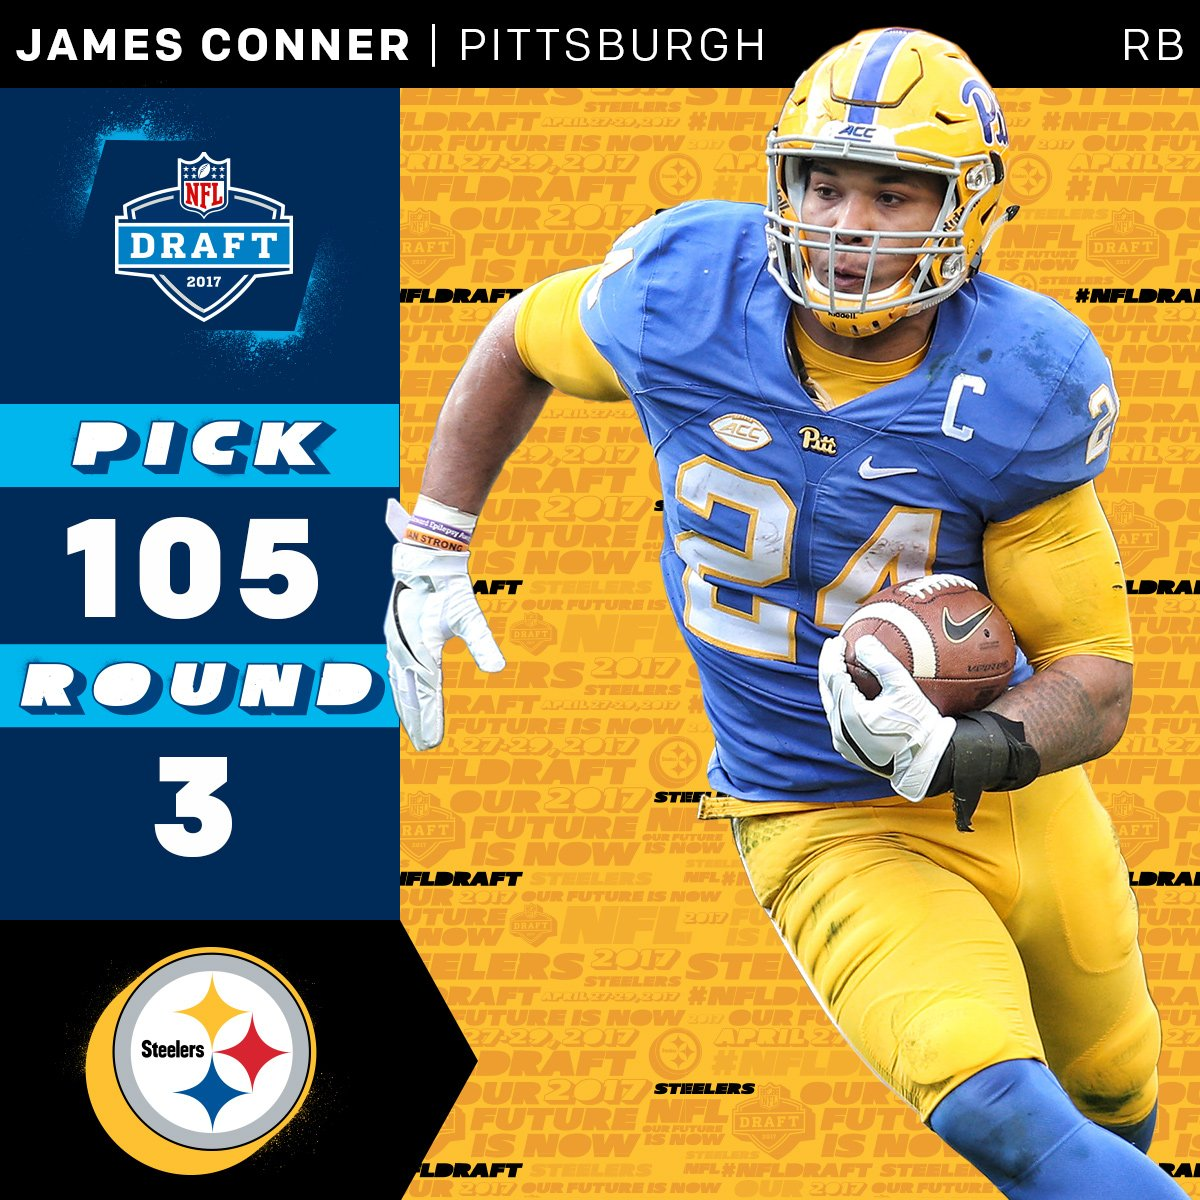 105 - James Conner